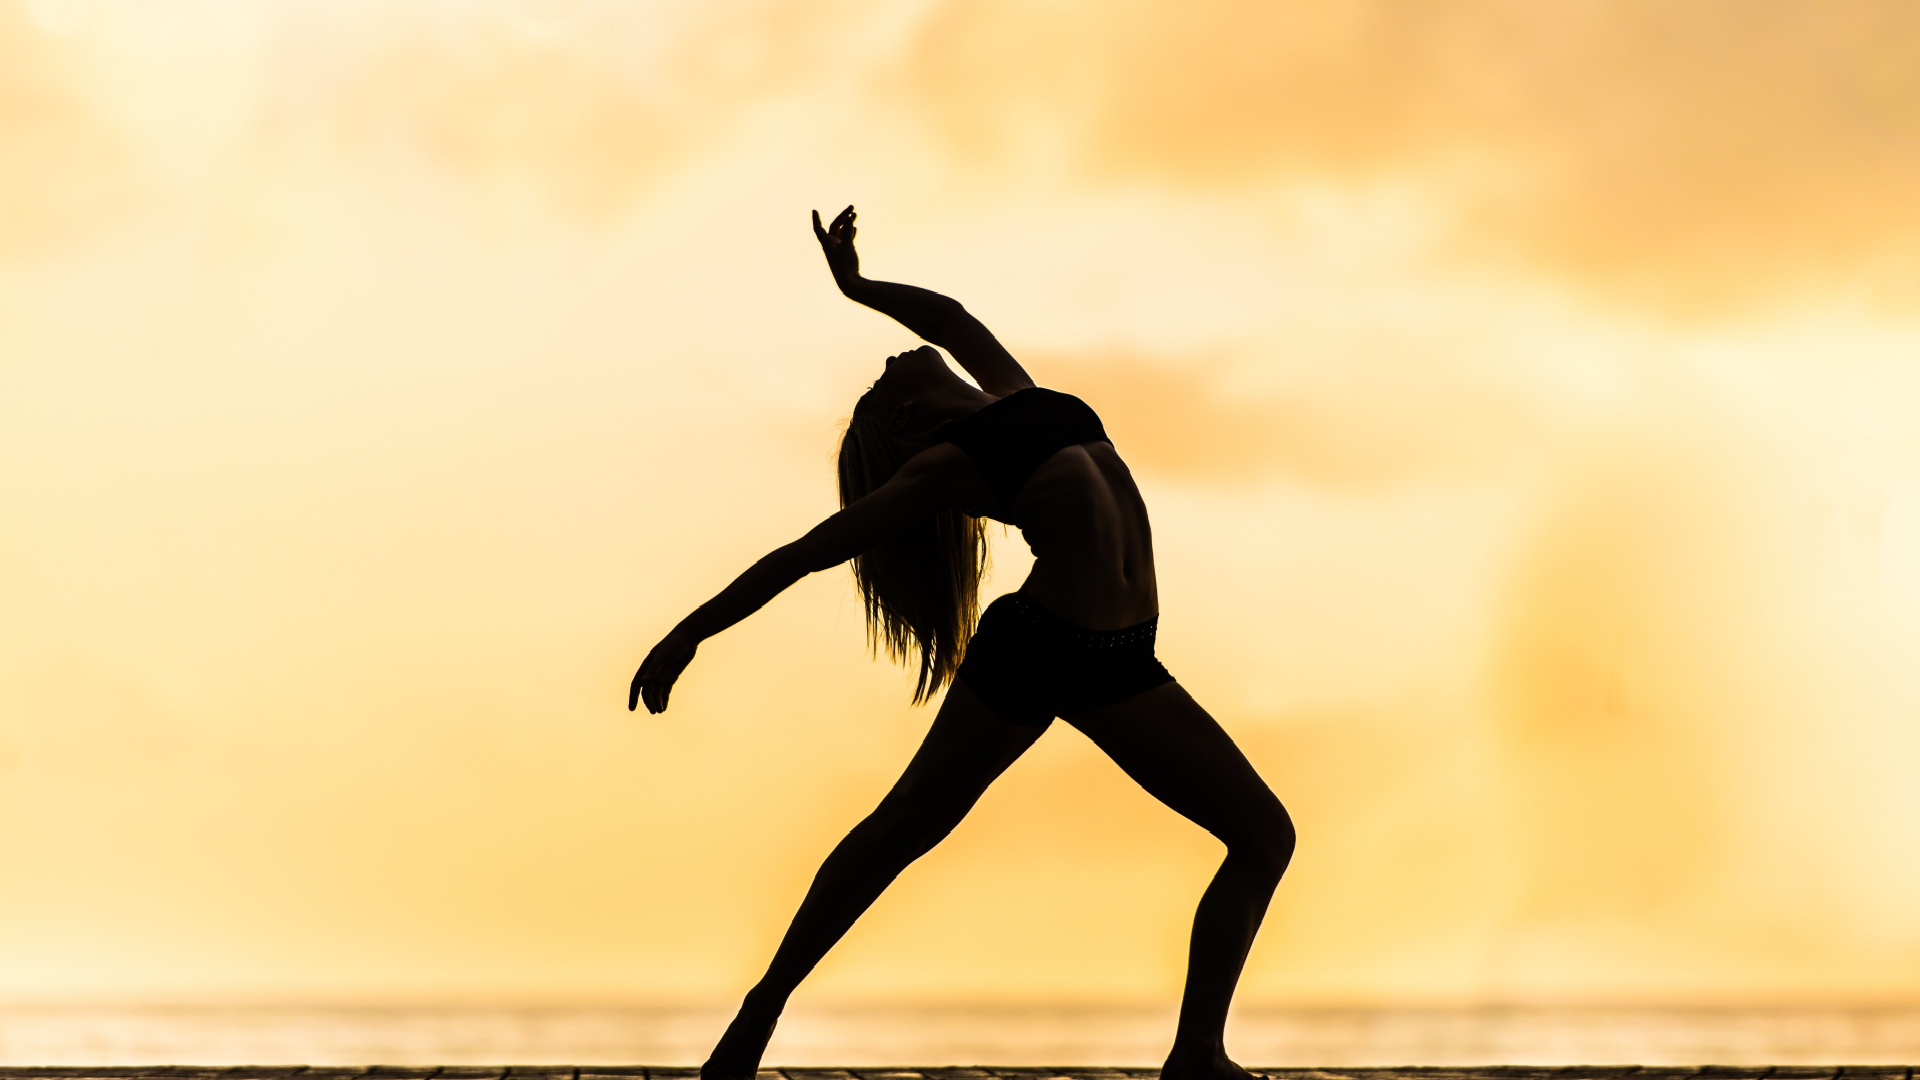 ballerina,woman,silhouette,dancing,dance,womanhood,cleaning lady,modern,adult female,contemporary,celebrities,char,skyline,yellow,terpsichore,female,cleaning woman,girl,charwoman